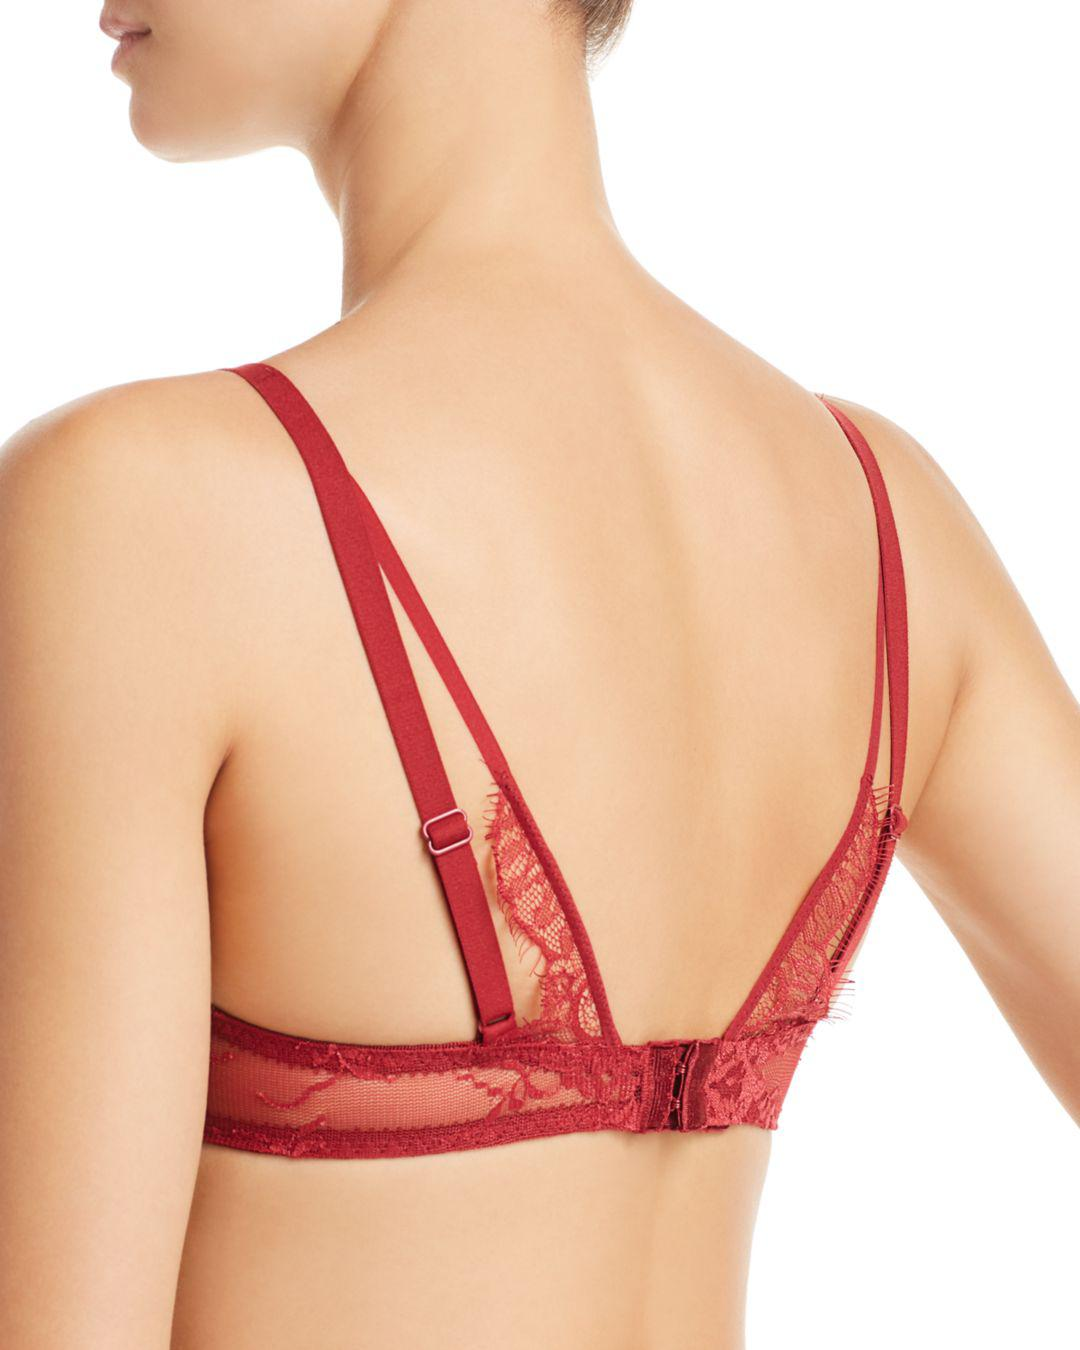 3d0d64bc69 Chantelle Gloria Lace Mesh Underwire Bra in Red - Save 55.55555555555556% -  Lyst